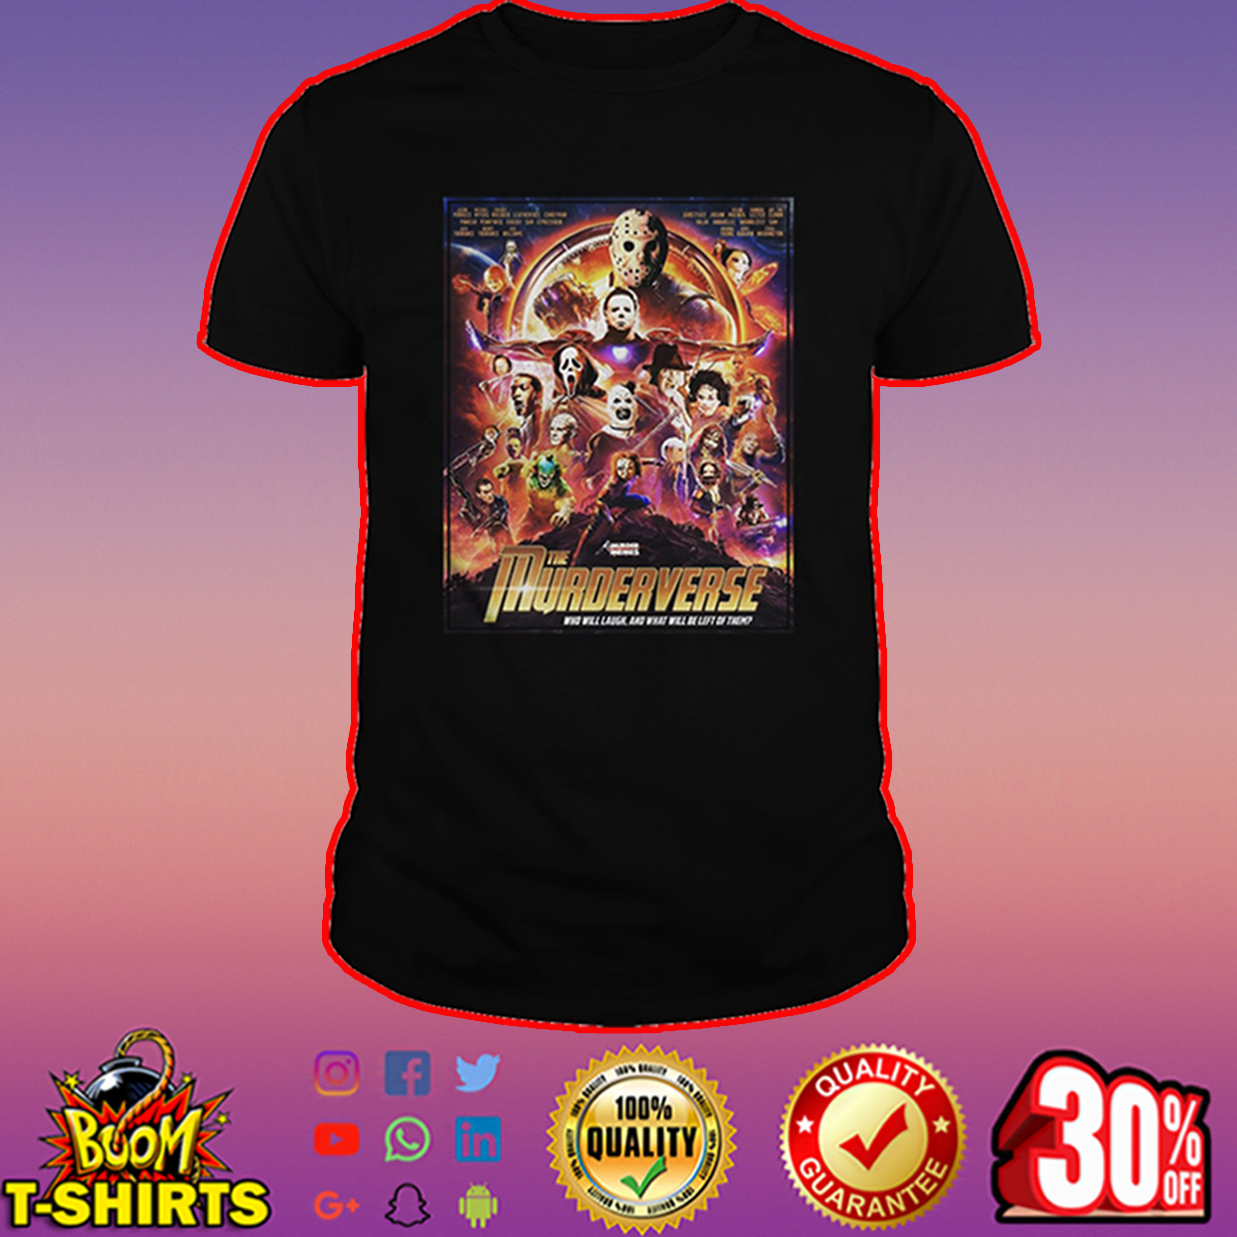 The Murderverse who will laugh shirt